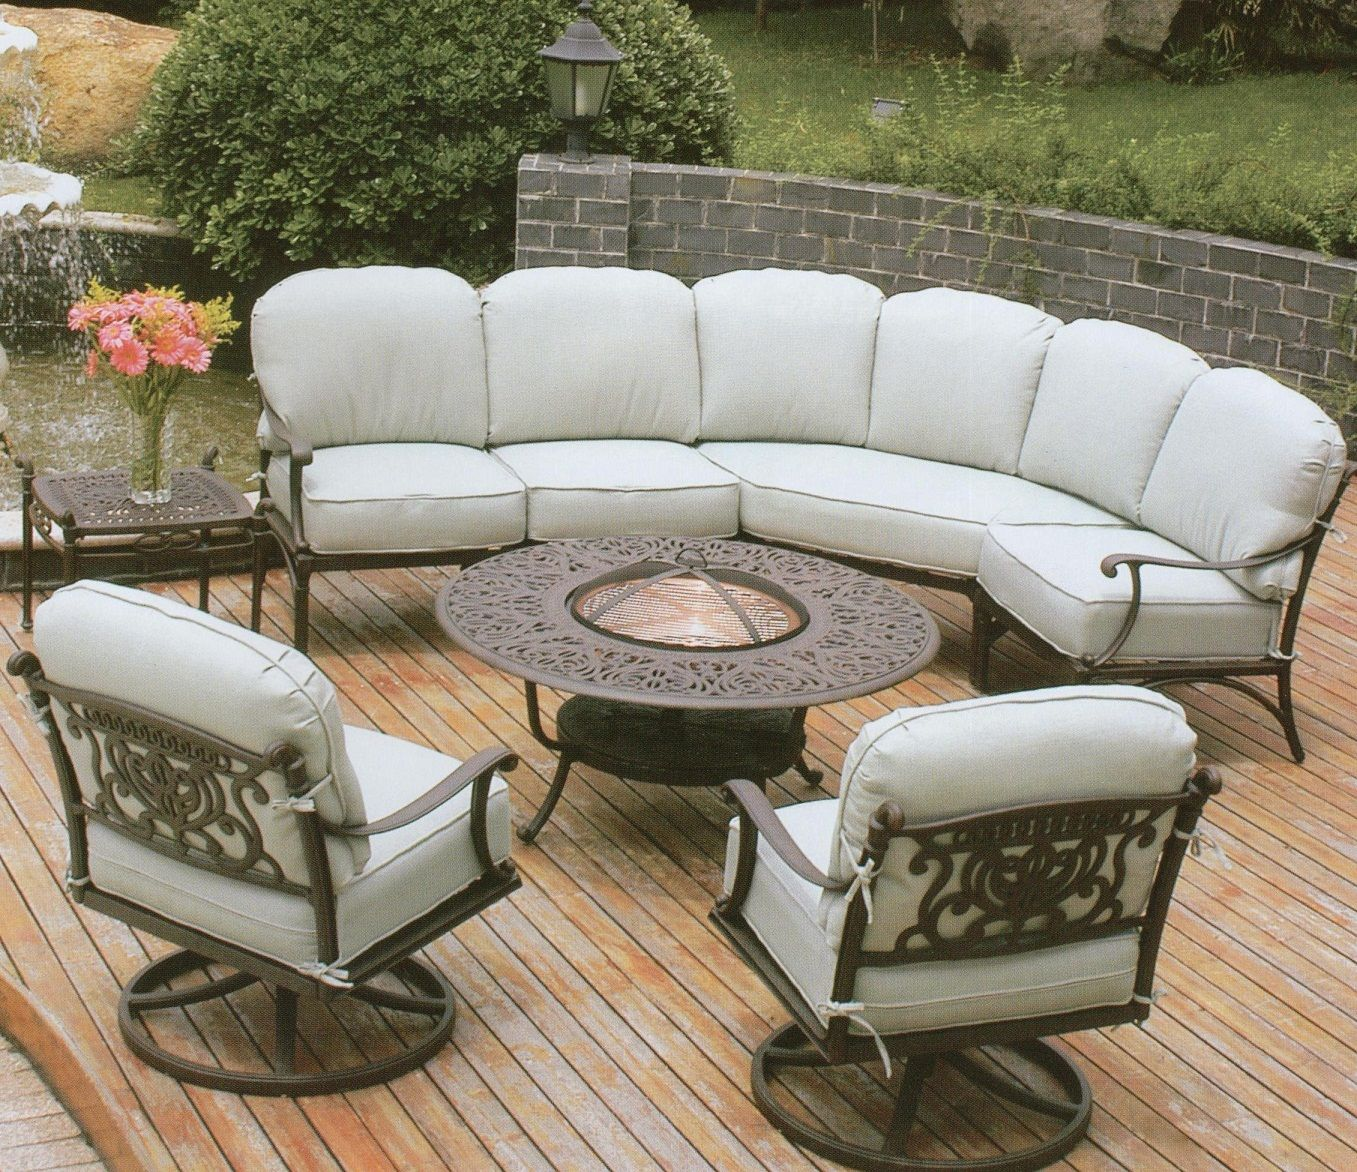 Patio Furniture Sears Patio Furniture Clearance Sale Clearance Patio Furniture Iron Patio - Garden Furniture Clearance Middlesbrough